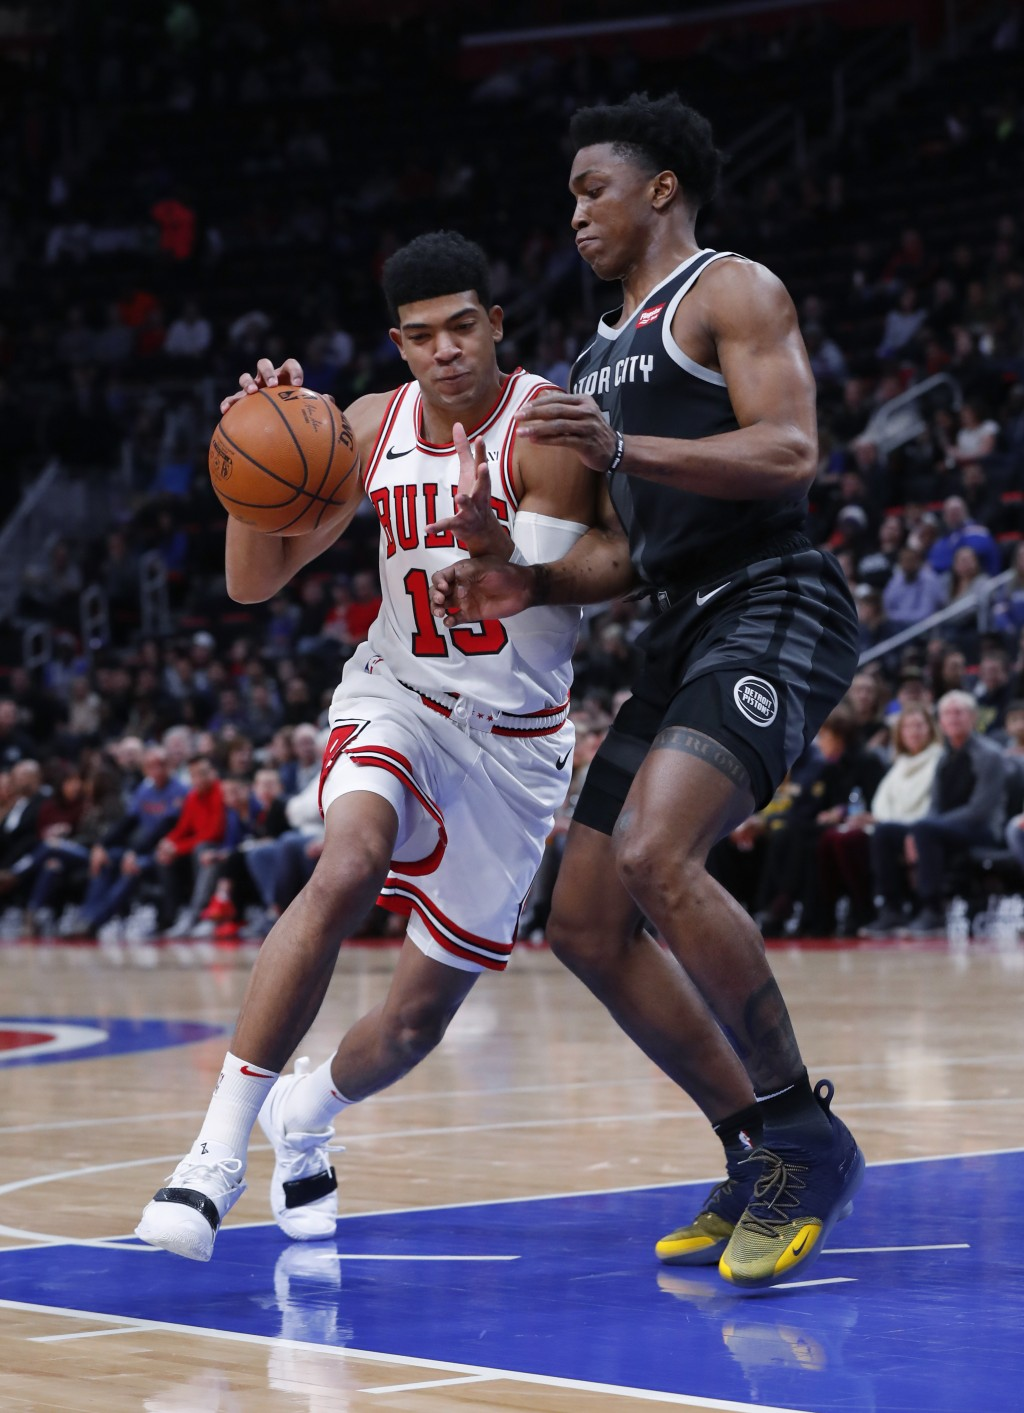 Chicago Bulls forward Chandler Hutchison (15) drives on Detroit Pistons forward Stanley Johnson during the first half of an NBA basketball game in Det